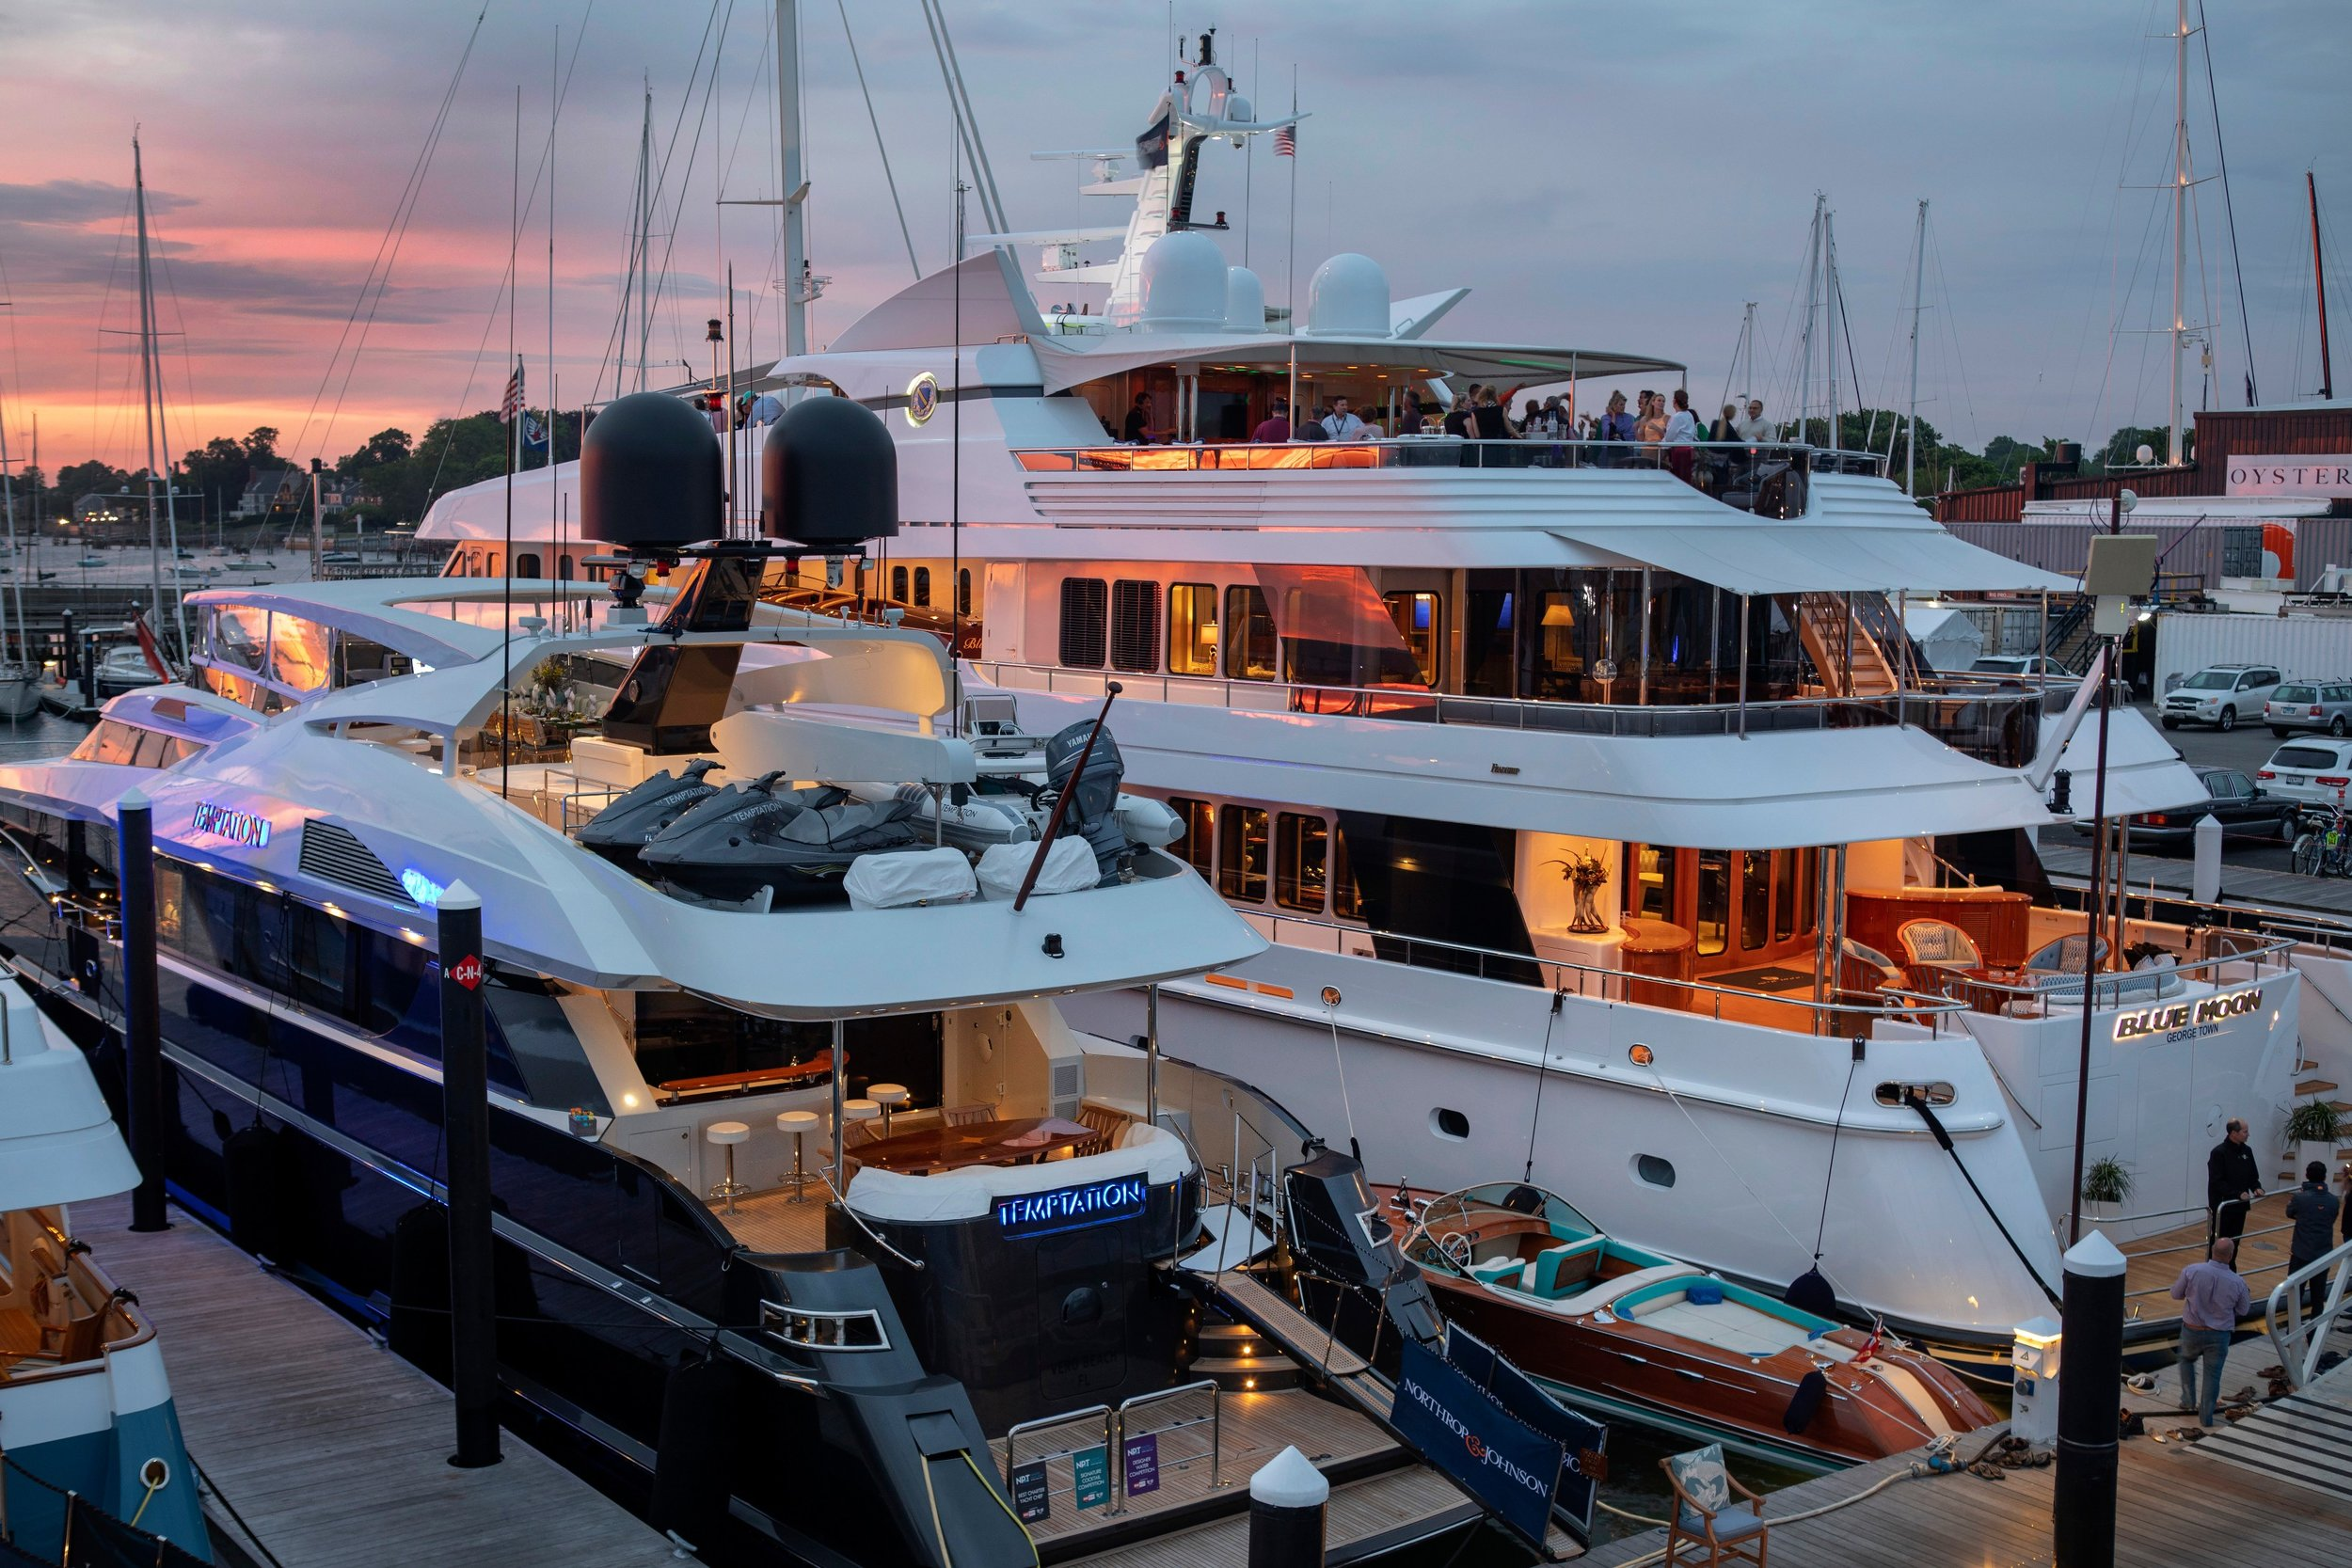 The 123' motor yacht  Temptation and the 198' motor yacht  Blue Moon represented some of the diverse chartering options in New England at the 2018 Newport Charter Yacht Show presented by Helly Hansen Newport.(photo credit: Billy Black)